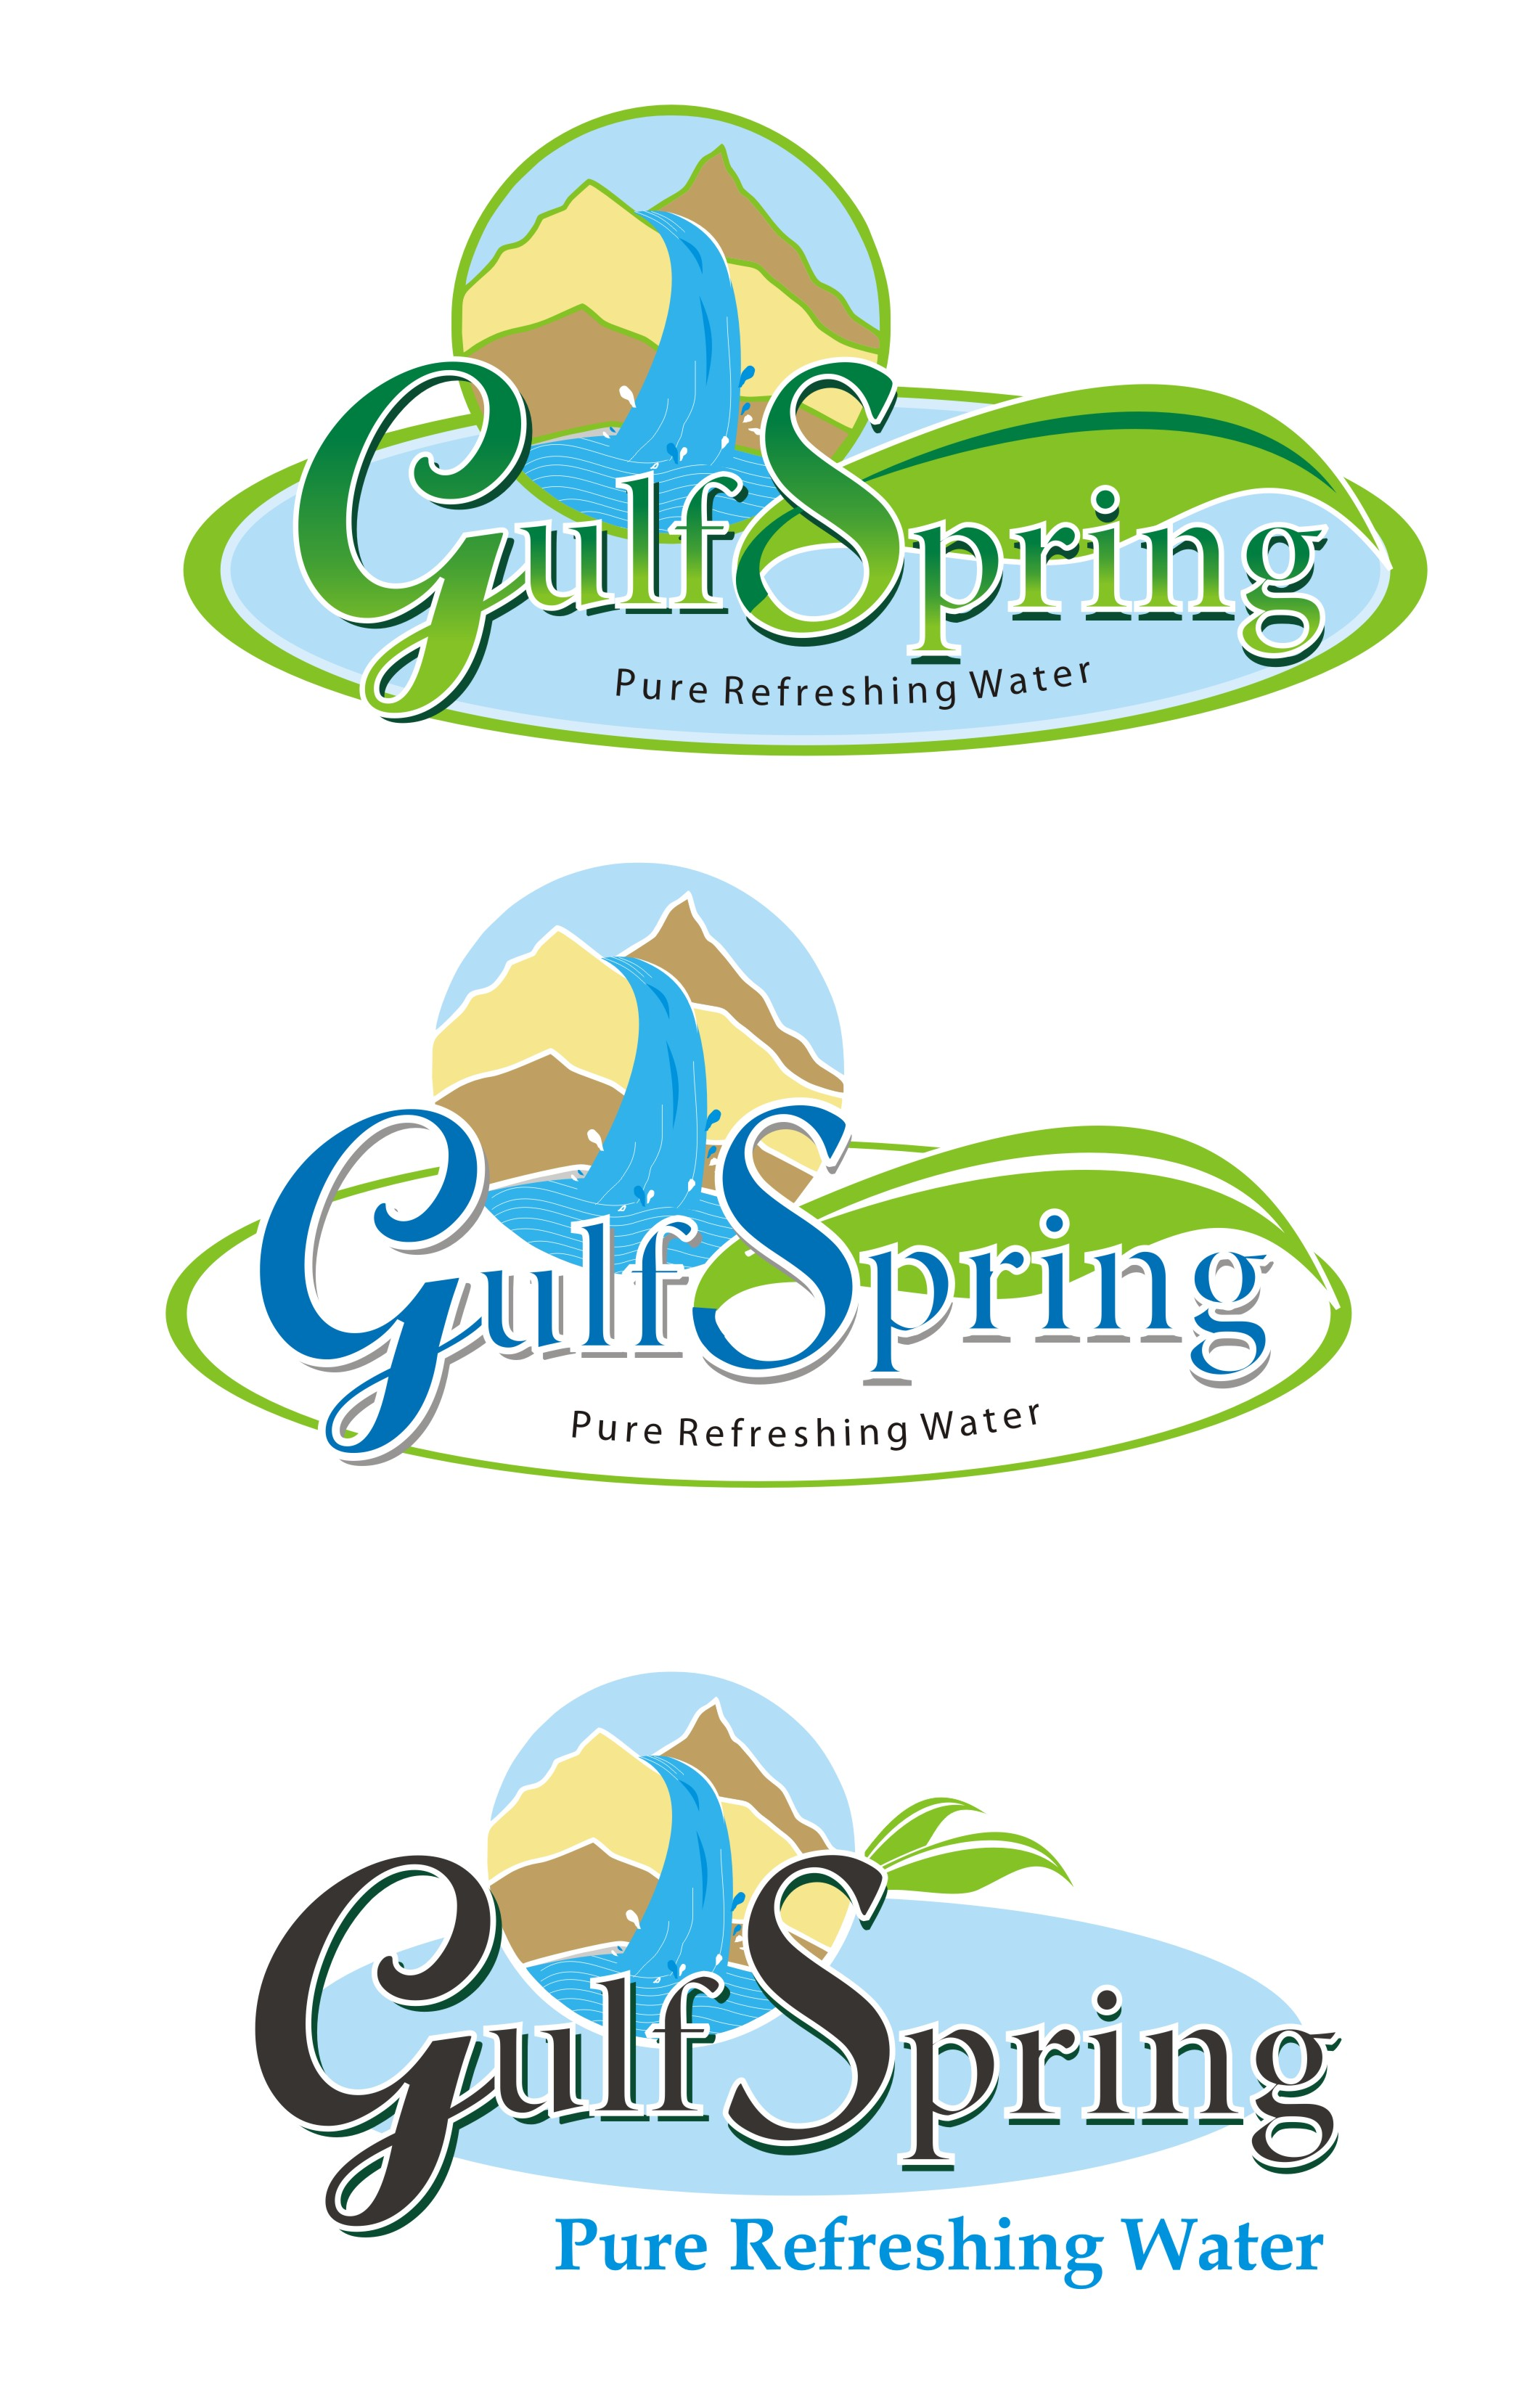 Logo Design by Mahida Kirit Chandrasinh - Entry No. 73 in the Logo Design Contest Inspiring Logo Design for Gulf Spring.